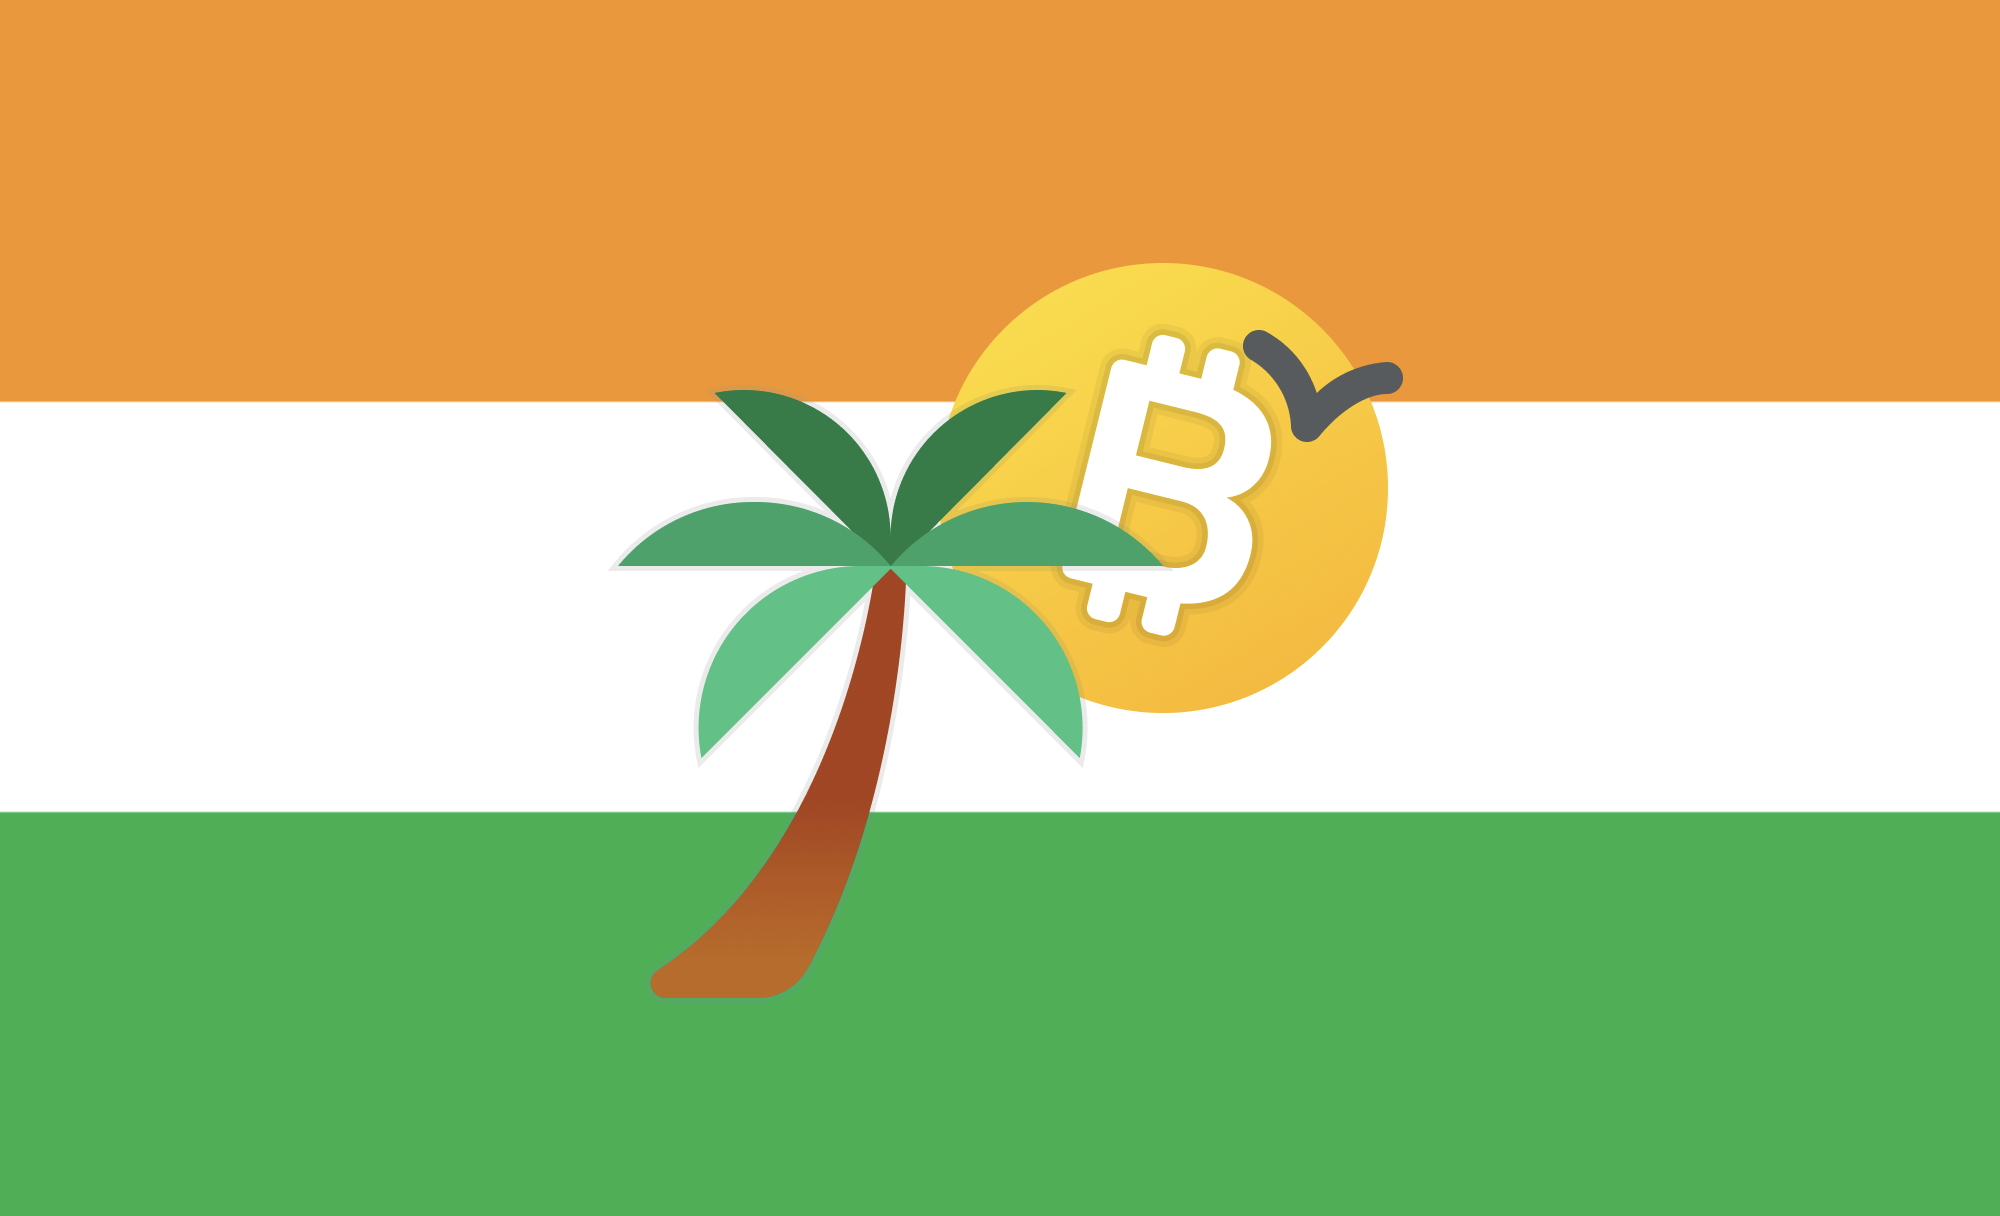 The image of the article in Balaji S Srinivasan's latest article on 'Miami Tech Week—The Start Of Startup Cities. It has the backdrop of the Indian flag along with images of a healthy tree, the Bitcoin Logo & a flying bird. To my mind, the image signifies democracy, nature, decentralization & freedom.